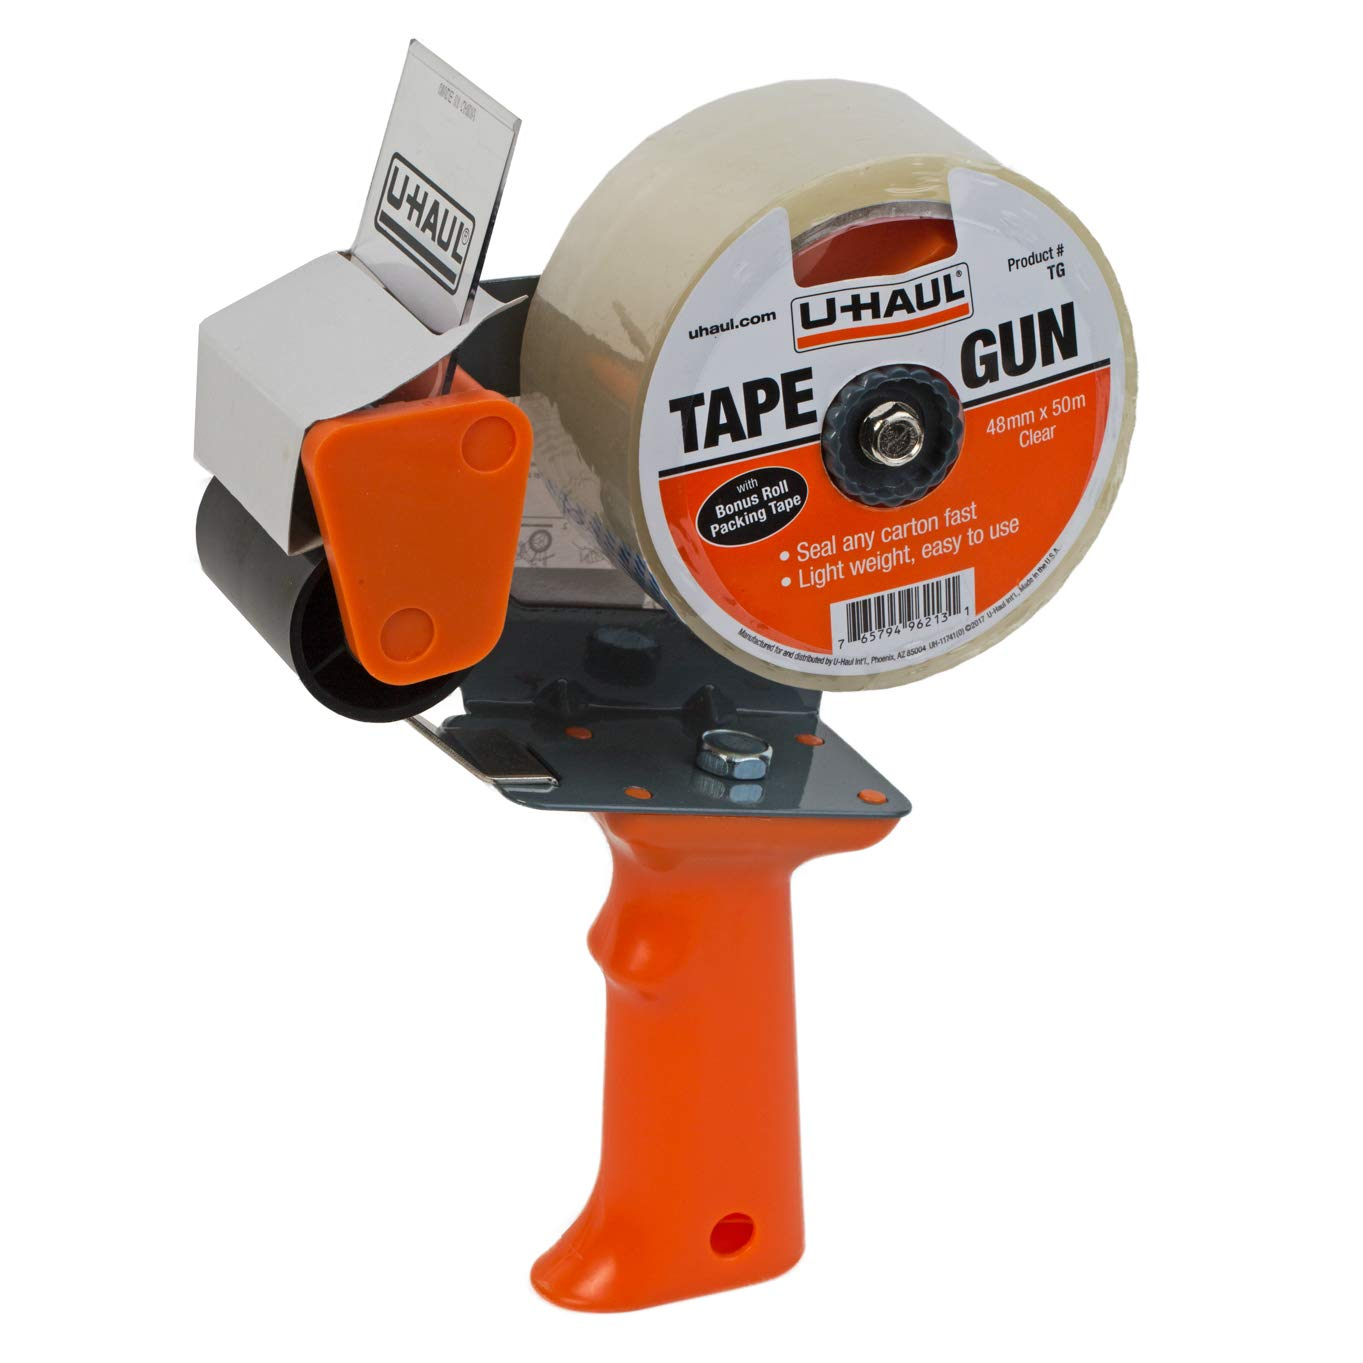 U-Haul Tape Gun Dispenser - 55 Yards of Moving/Packaging Tape Included